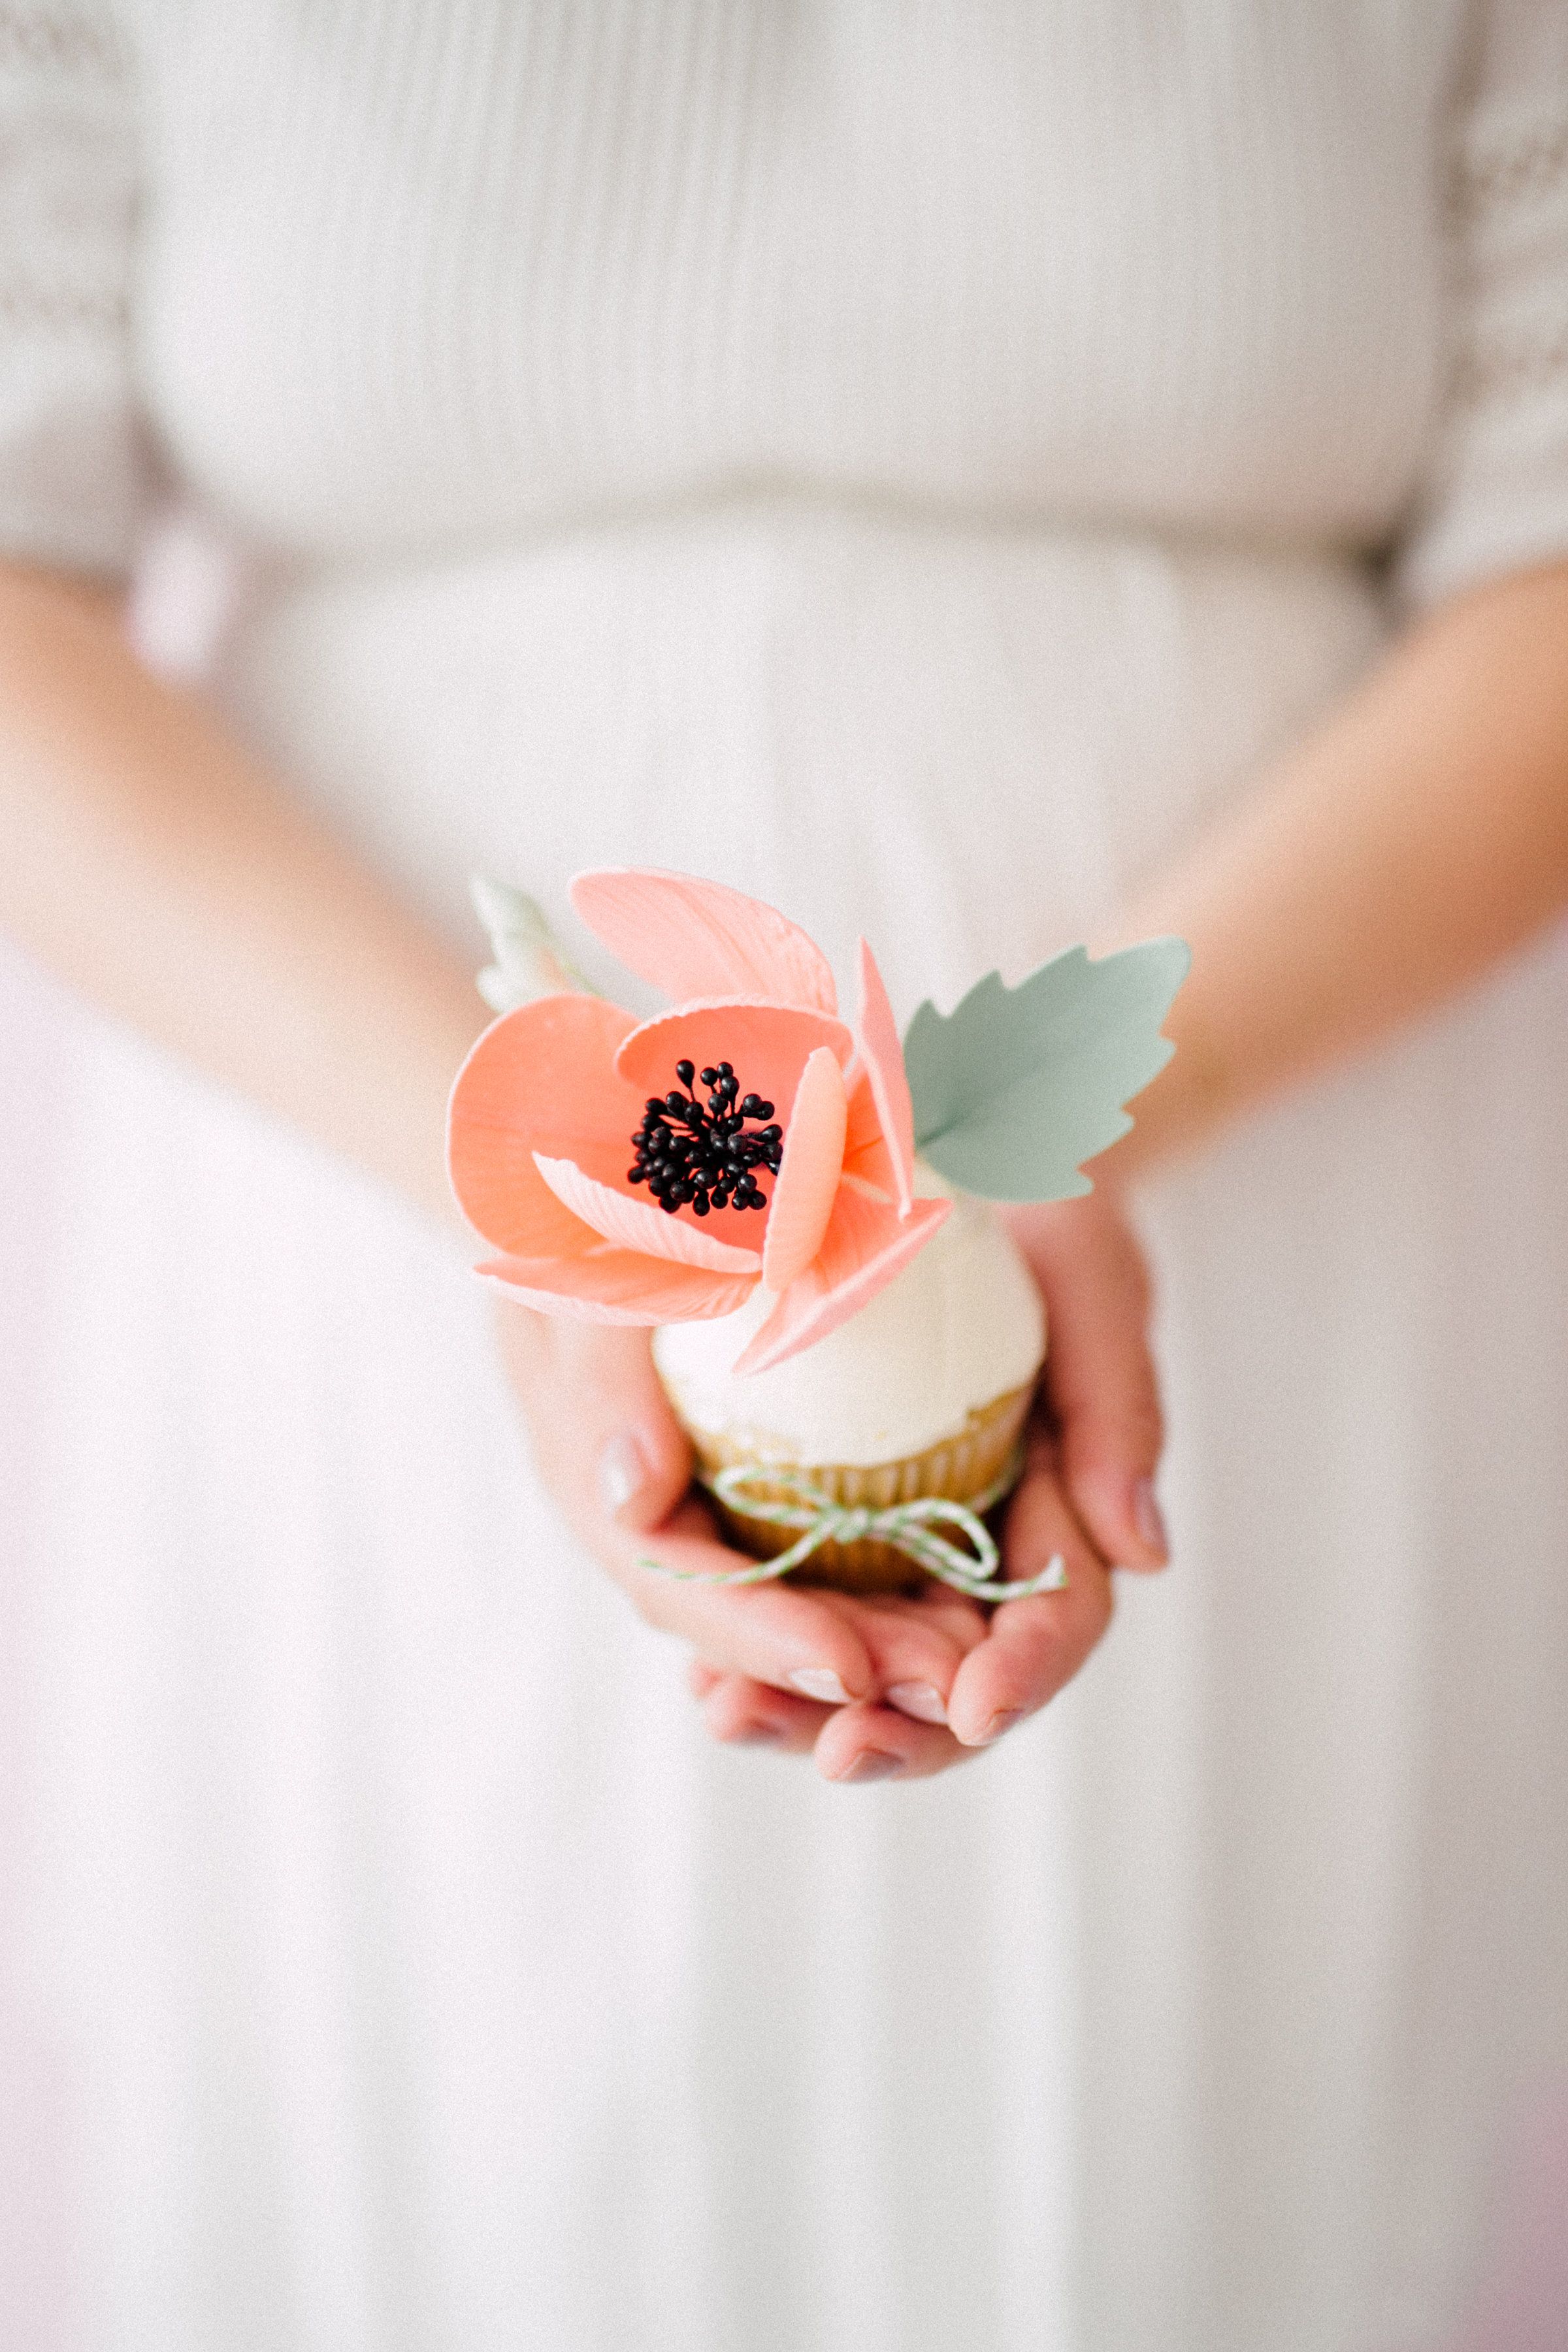 August In Bloom - Flower cupcake - Bun In The Oven Baby Shower (Style Me Pretty & SMP Living)